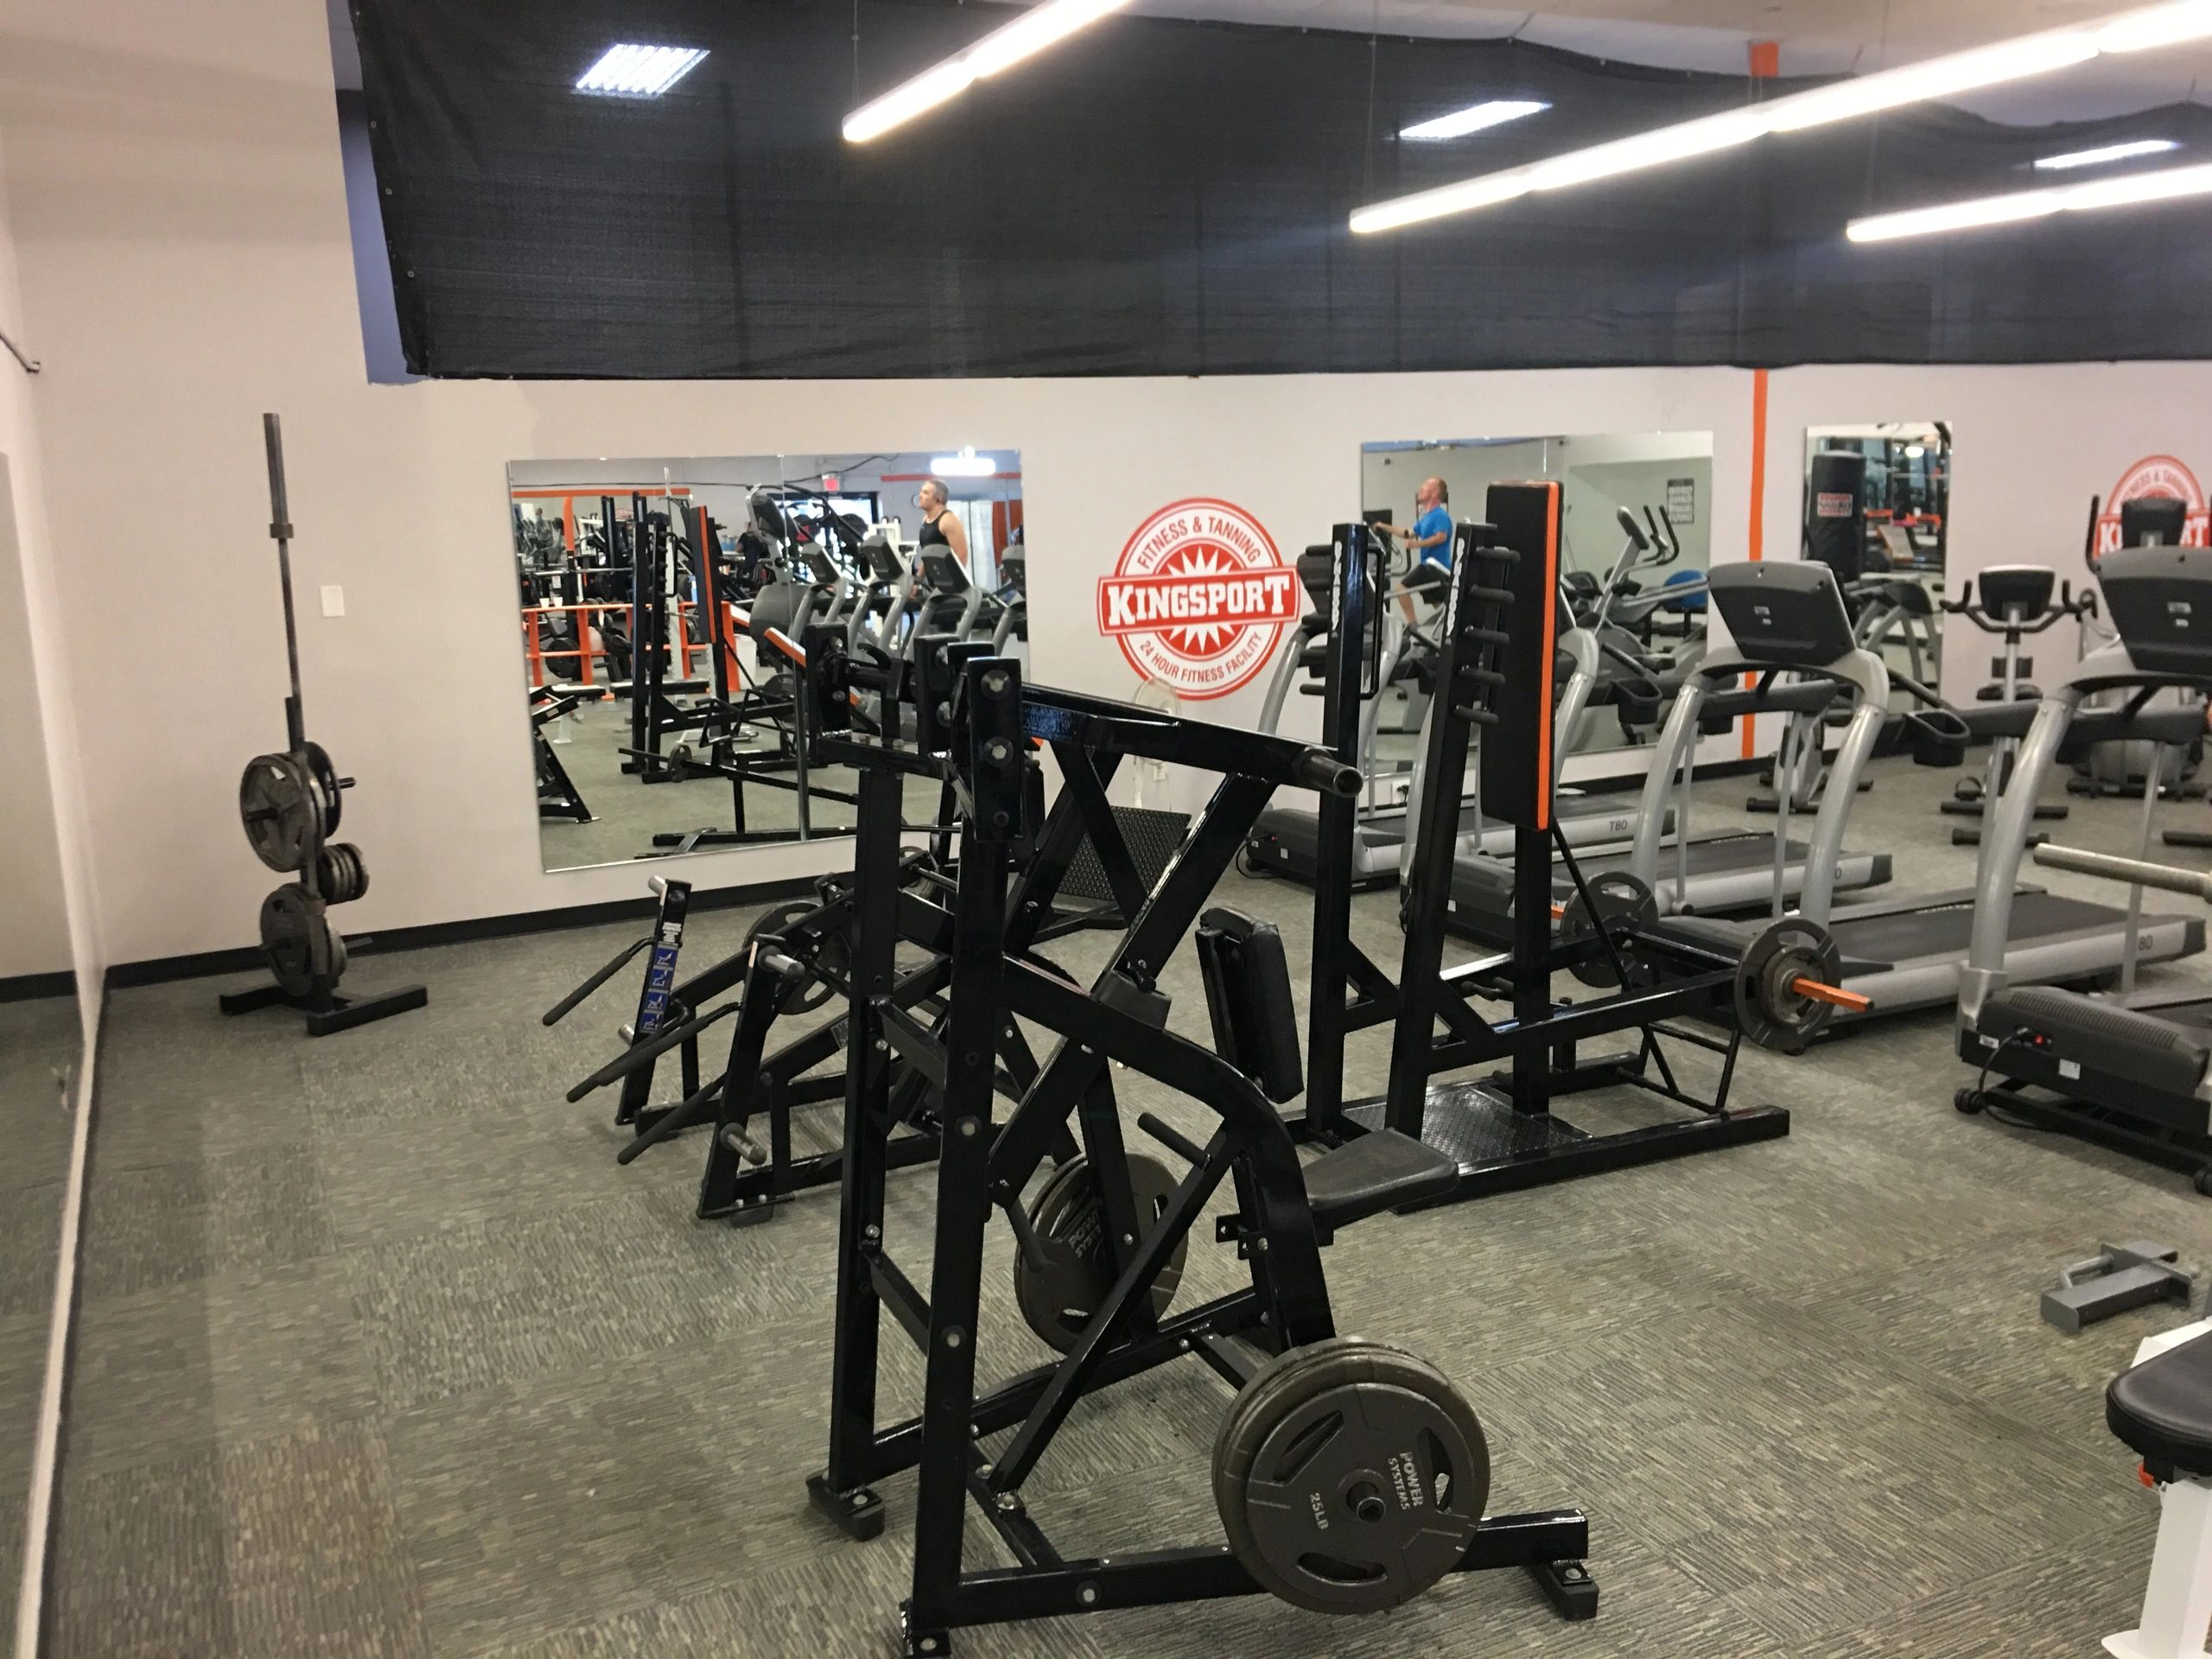 weight lifting equipment and treadmills